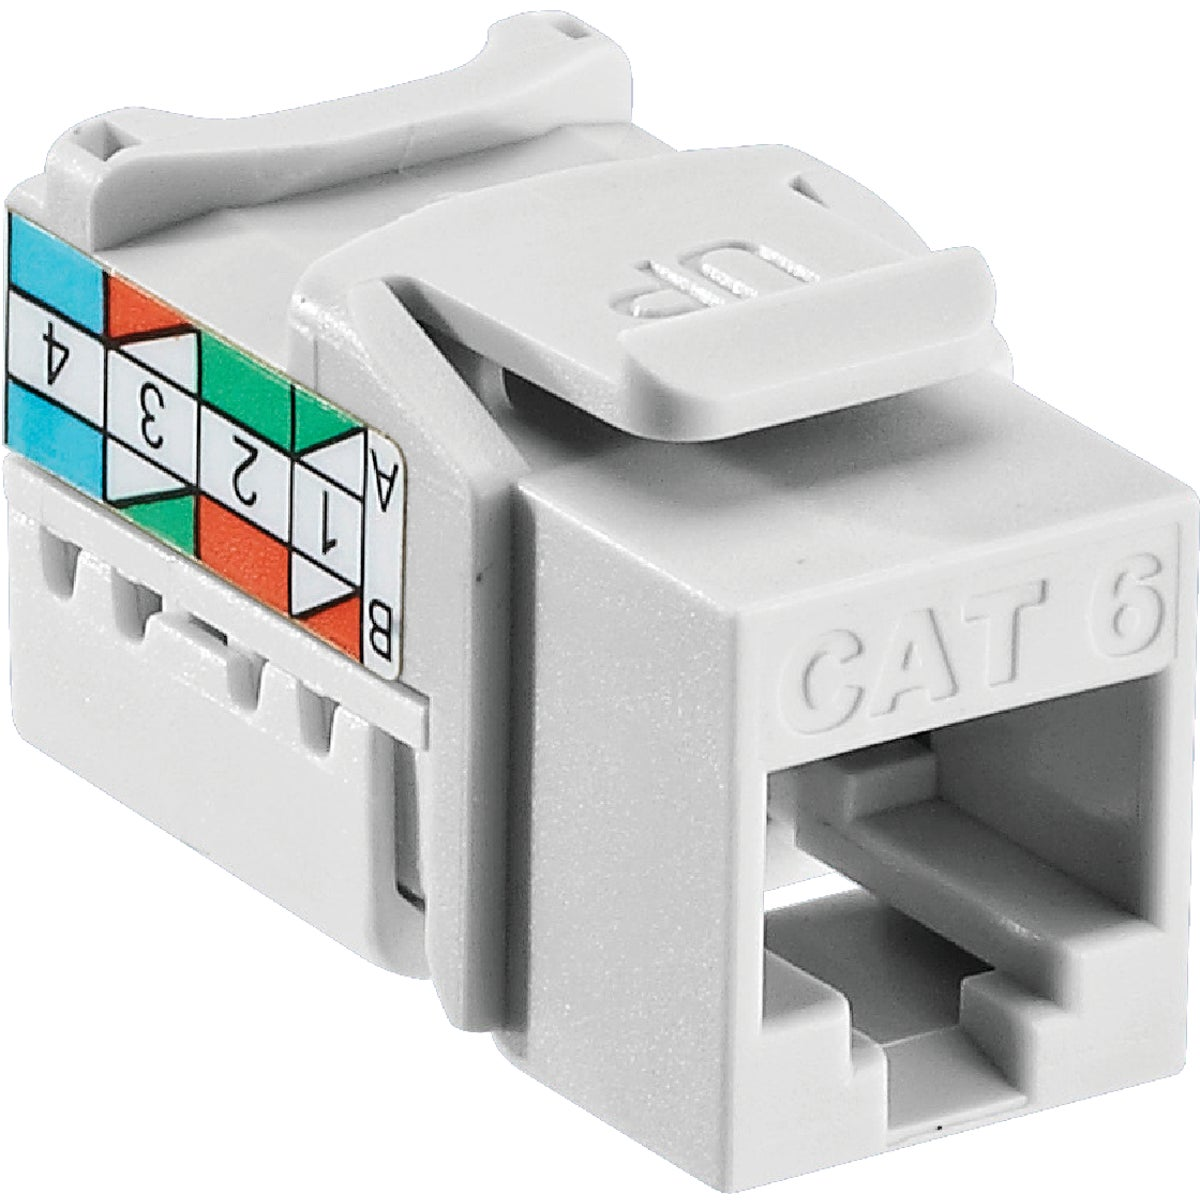 WHT 8-WIRE CAT6 JACK - R00-6G108-01W by Leviton Mfg Co